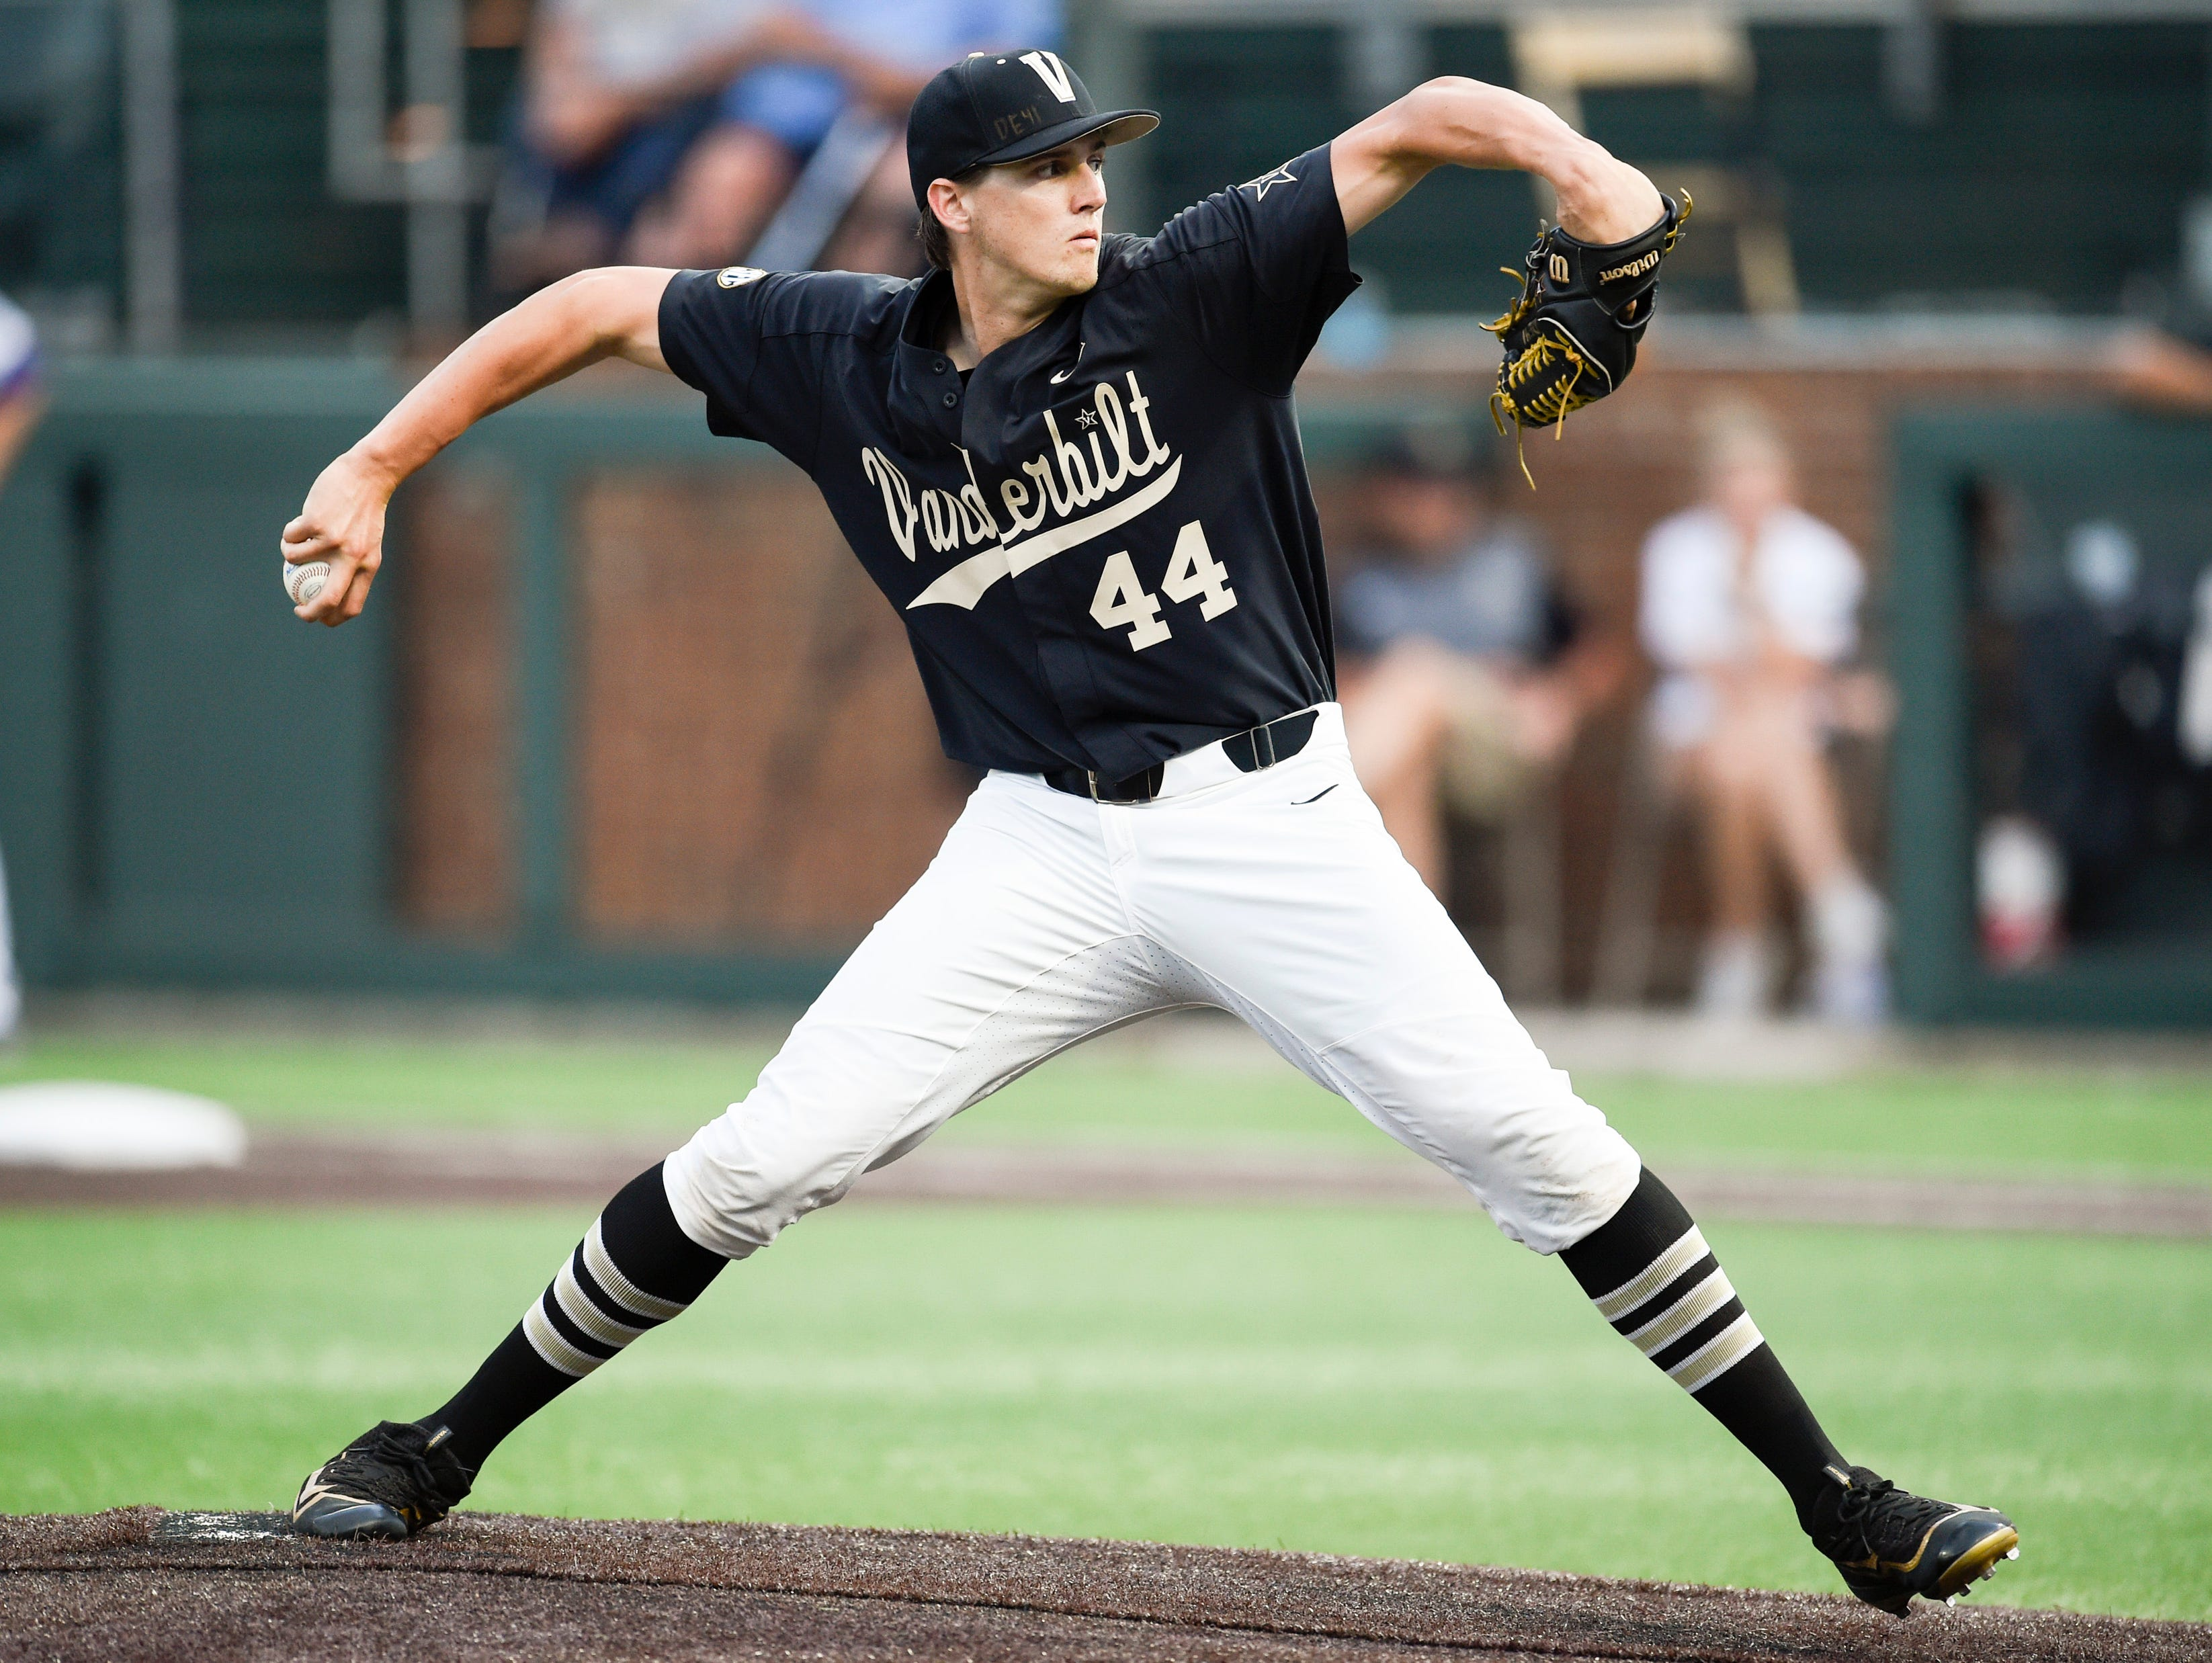 Vanderbilt pitcher Kyle Wright is expected to be a top-10 pick in the draft.